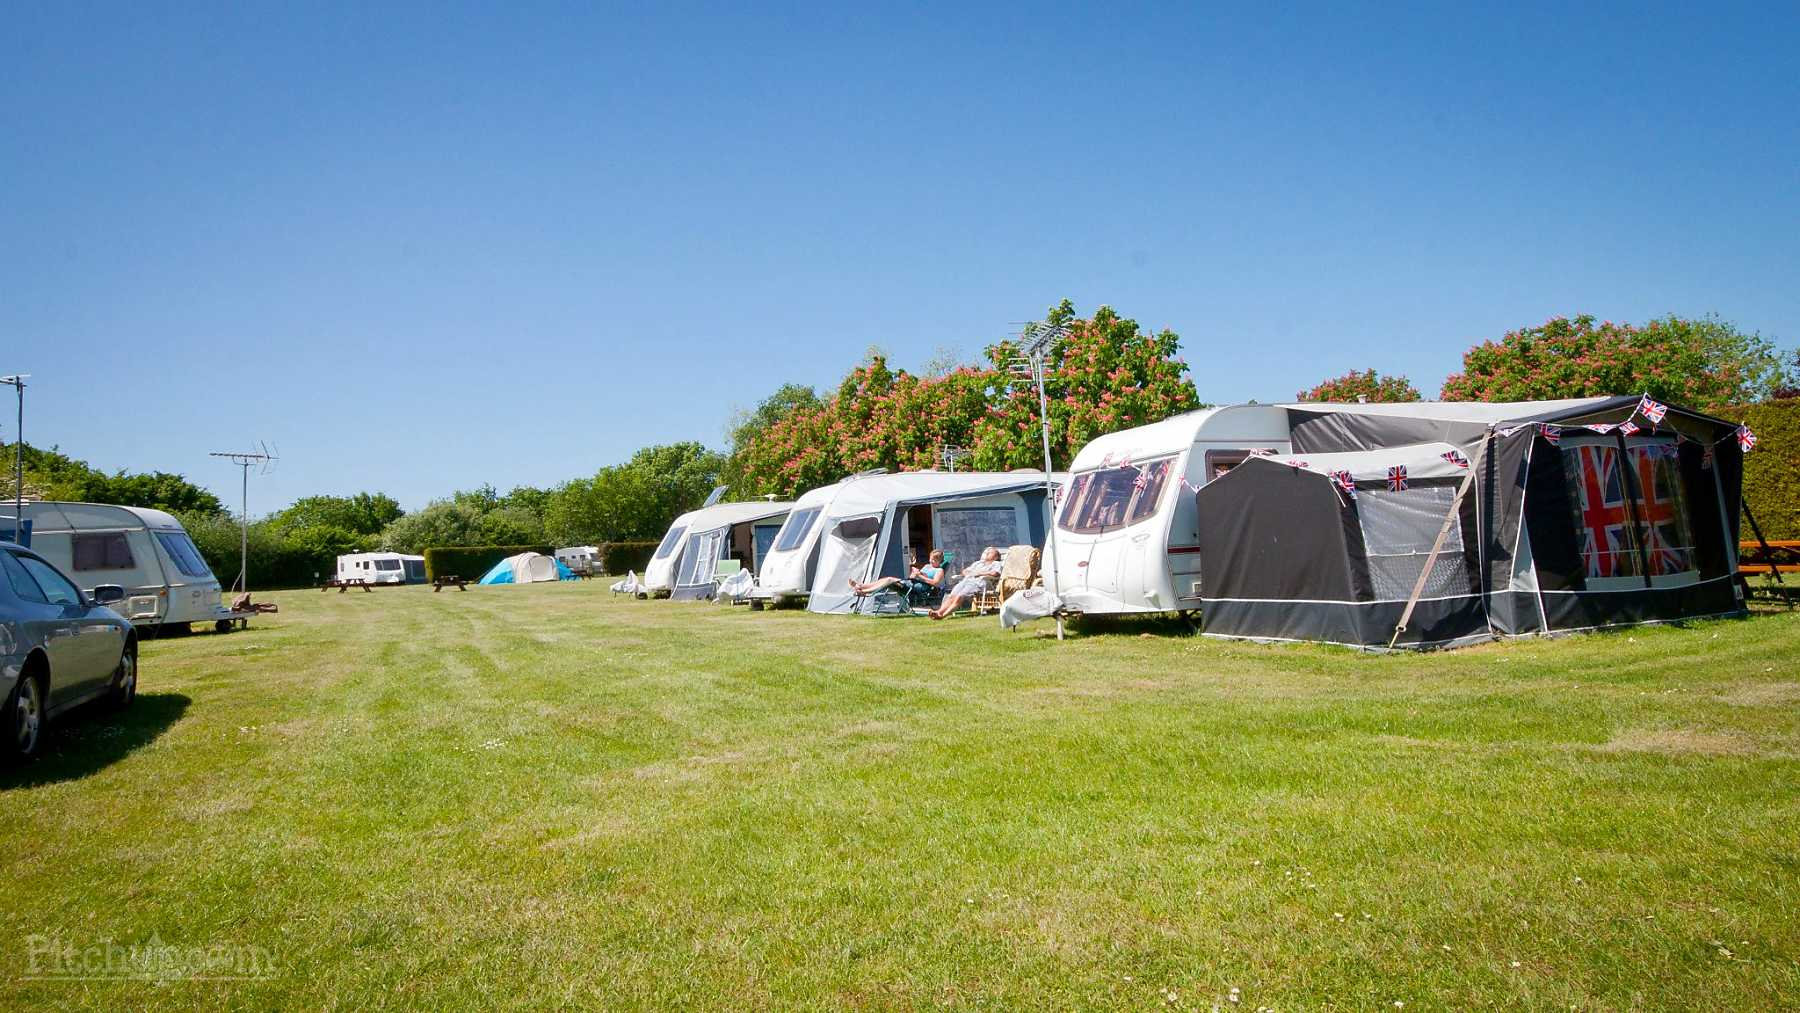 broadhembury-caravan-camping-park-electric-grass-pitch-family-park-family-fun.jpg